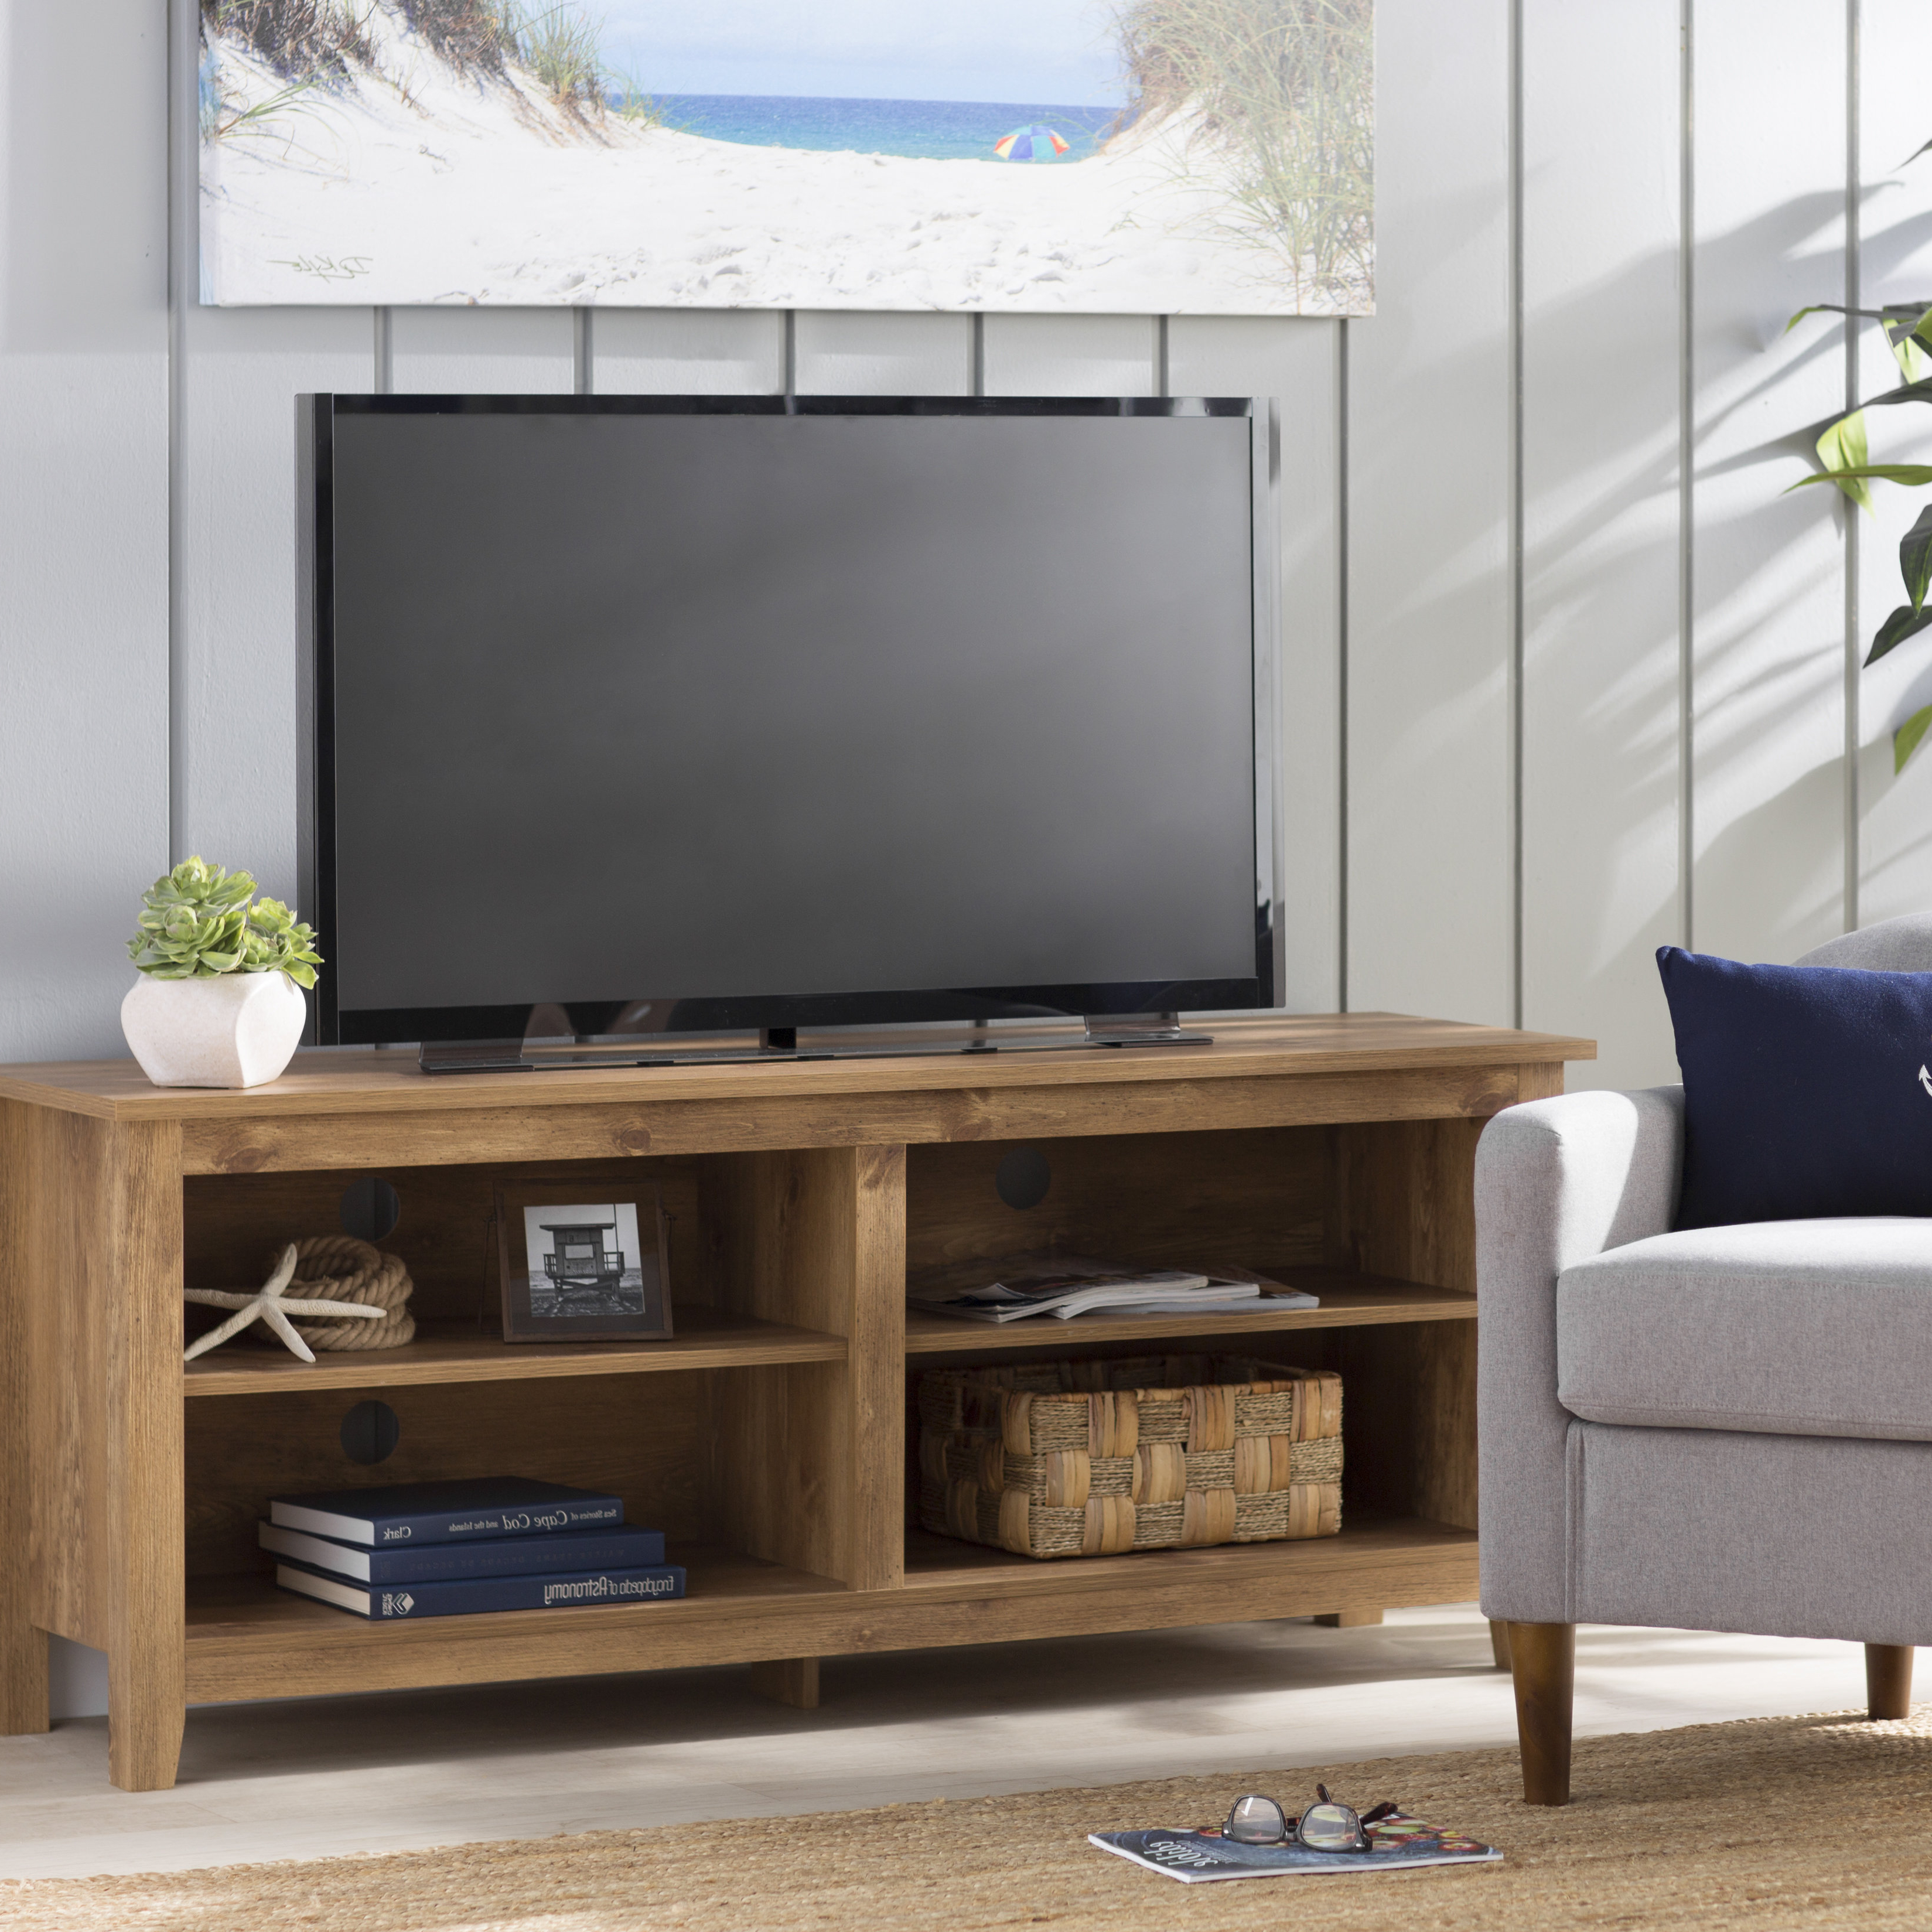 Wayfair With Best And Newest Kenzie 72 Inch Open Display Tv Stands (View 4 of 20)